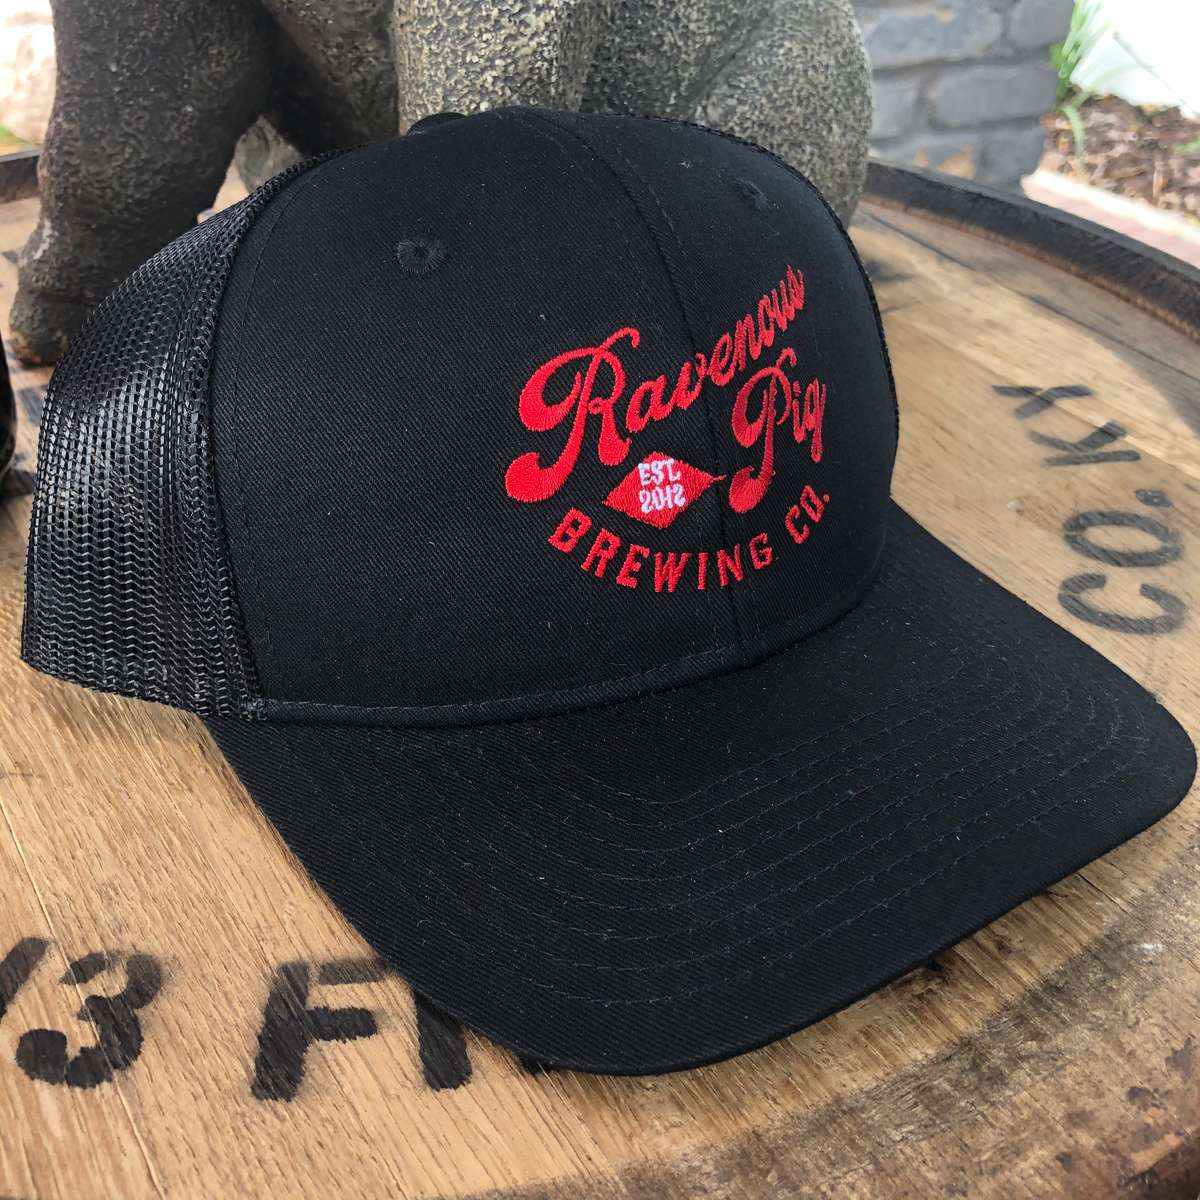 TRP brewing co hat